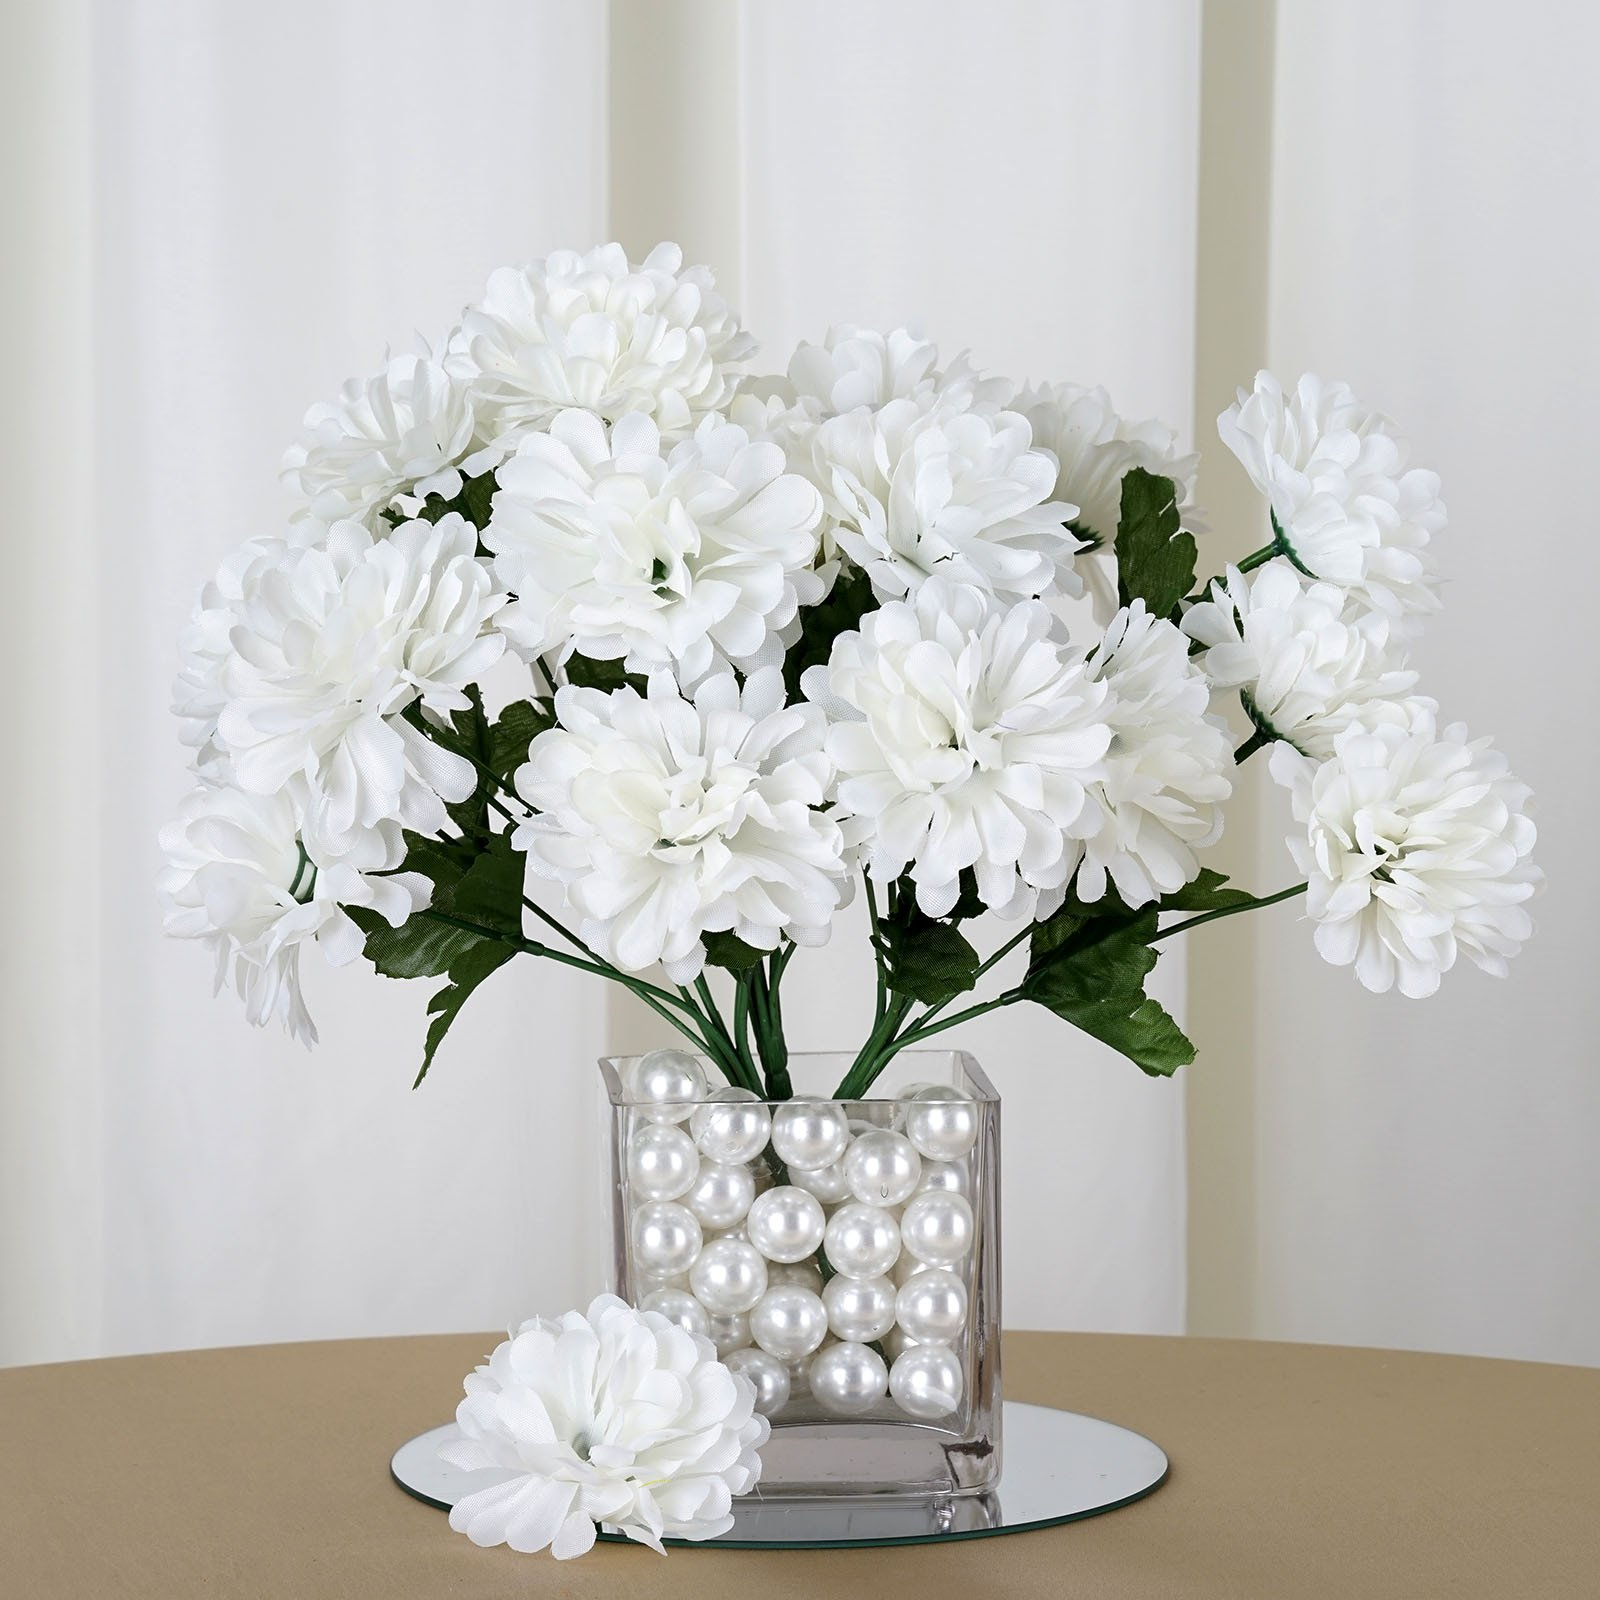 BalsaCircle 84 Chrysanthemum Mums Balls Silk Flowers - DIY Home ...